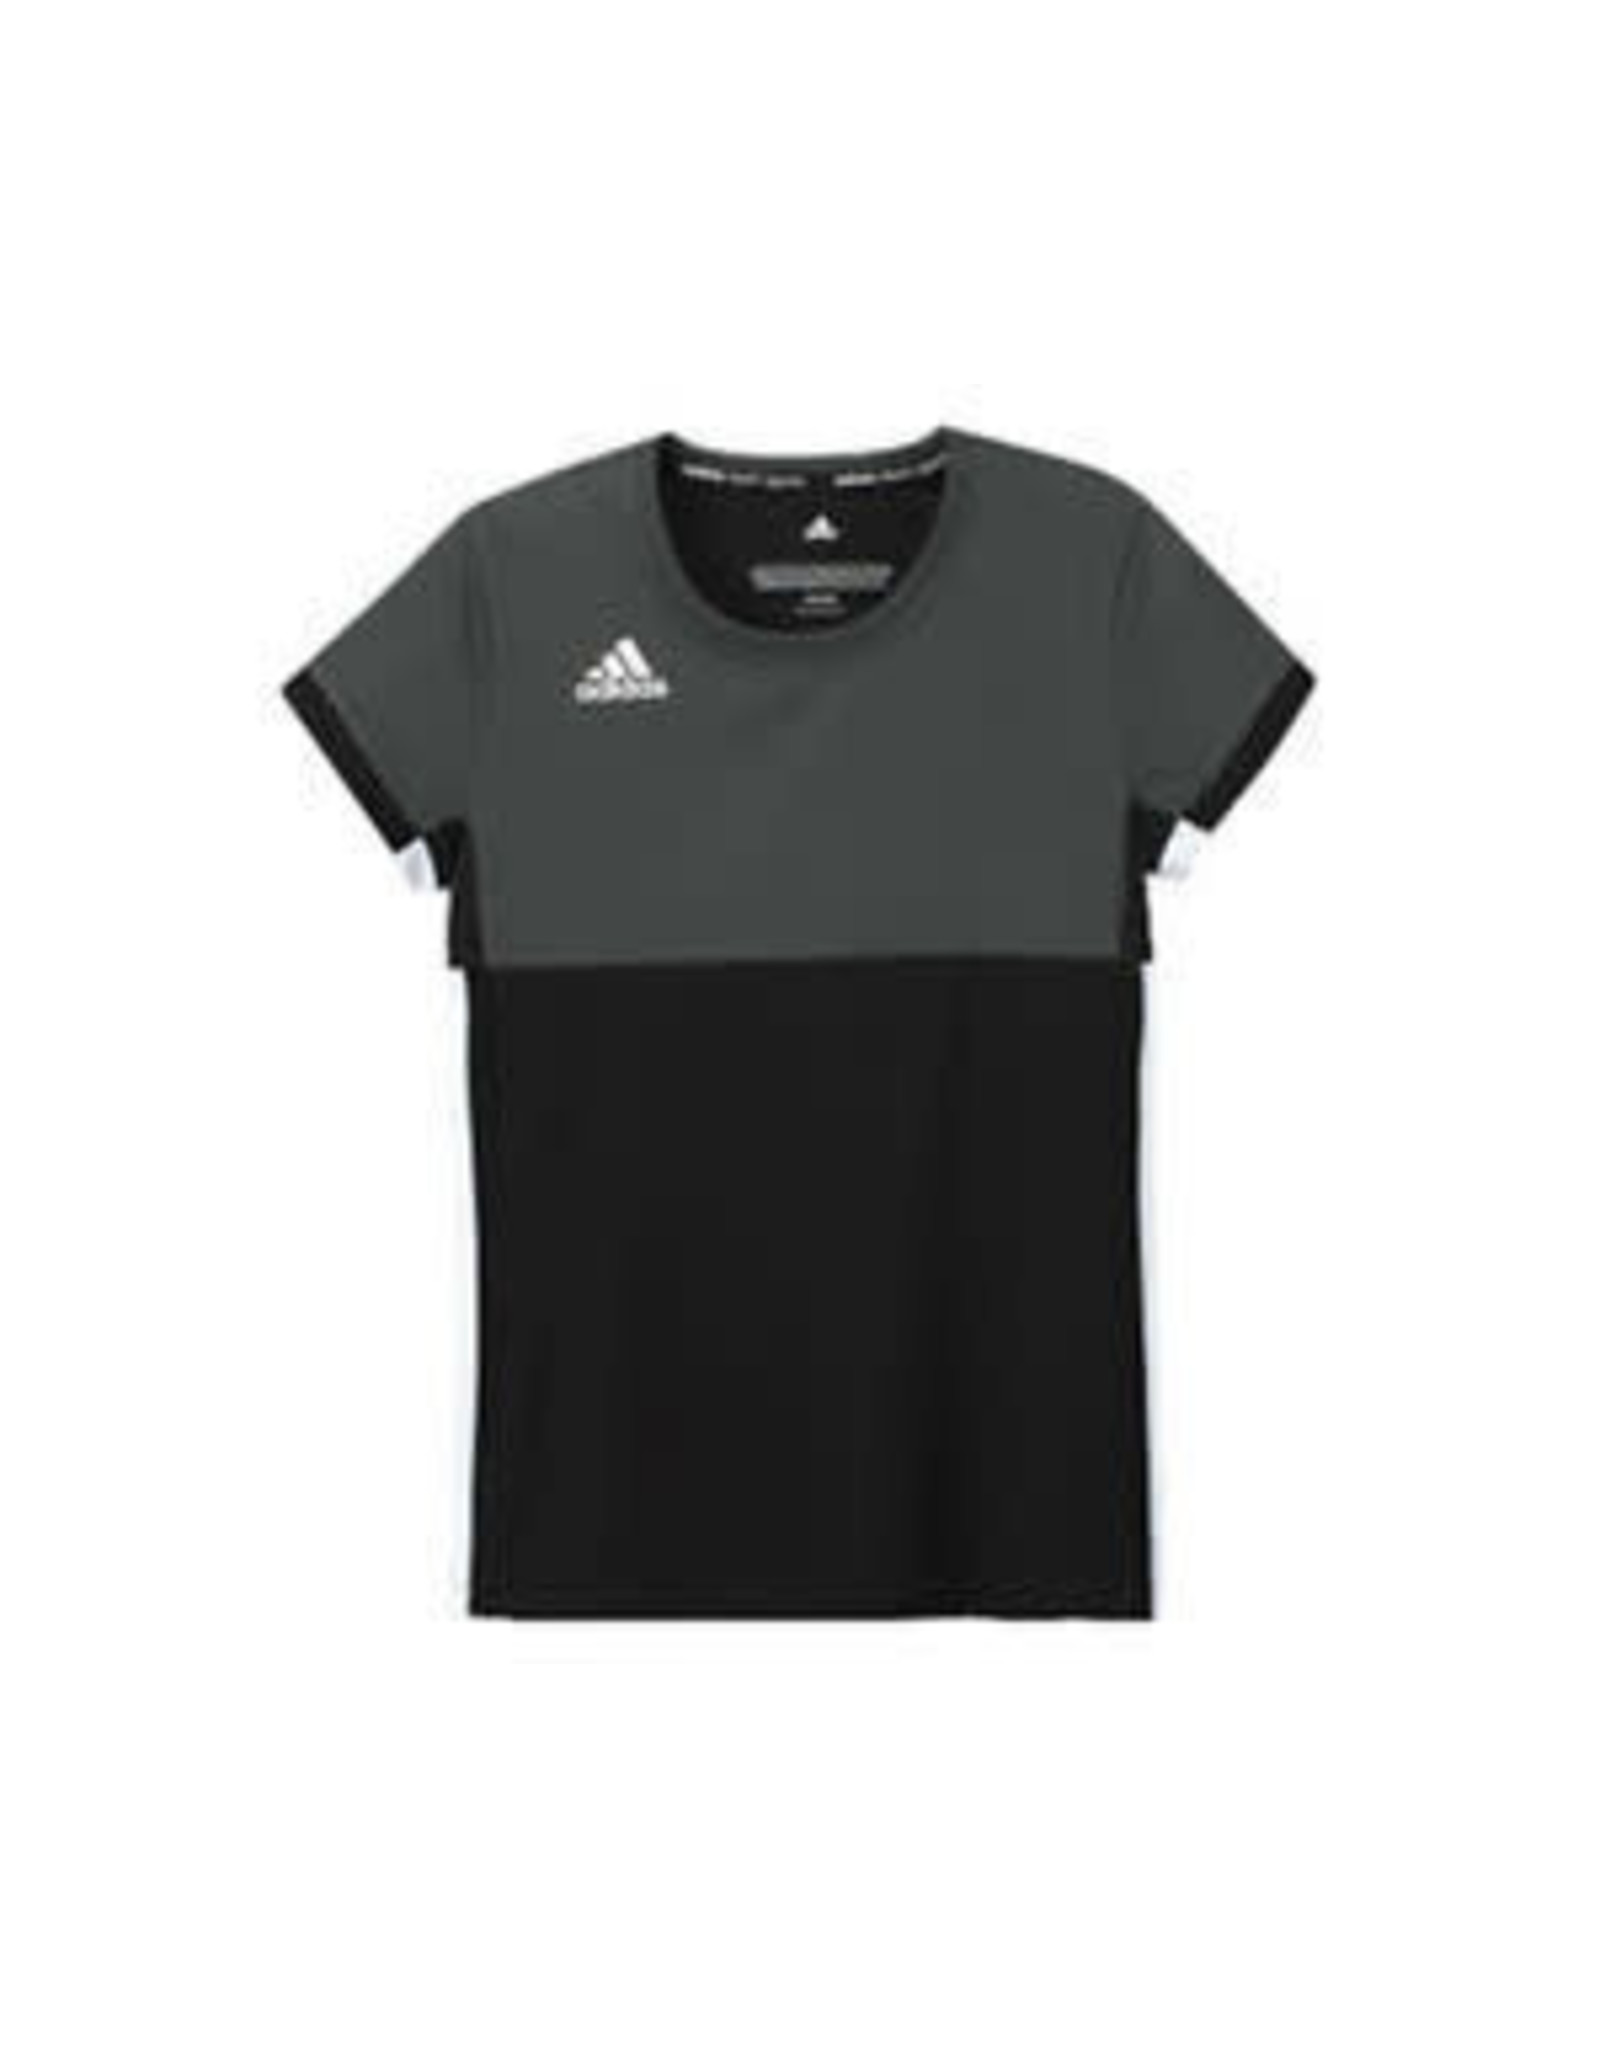 ADIDAS ADIDAS T16 CLIMACOOL S/L TEE GIRLS